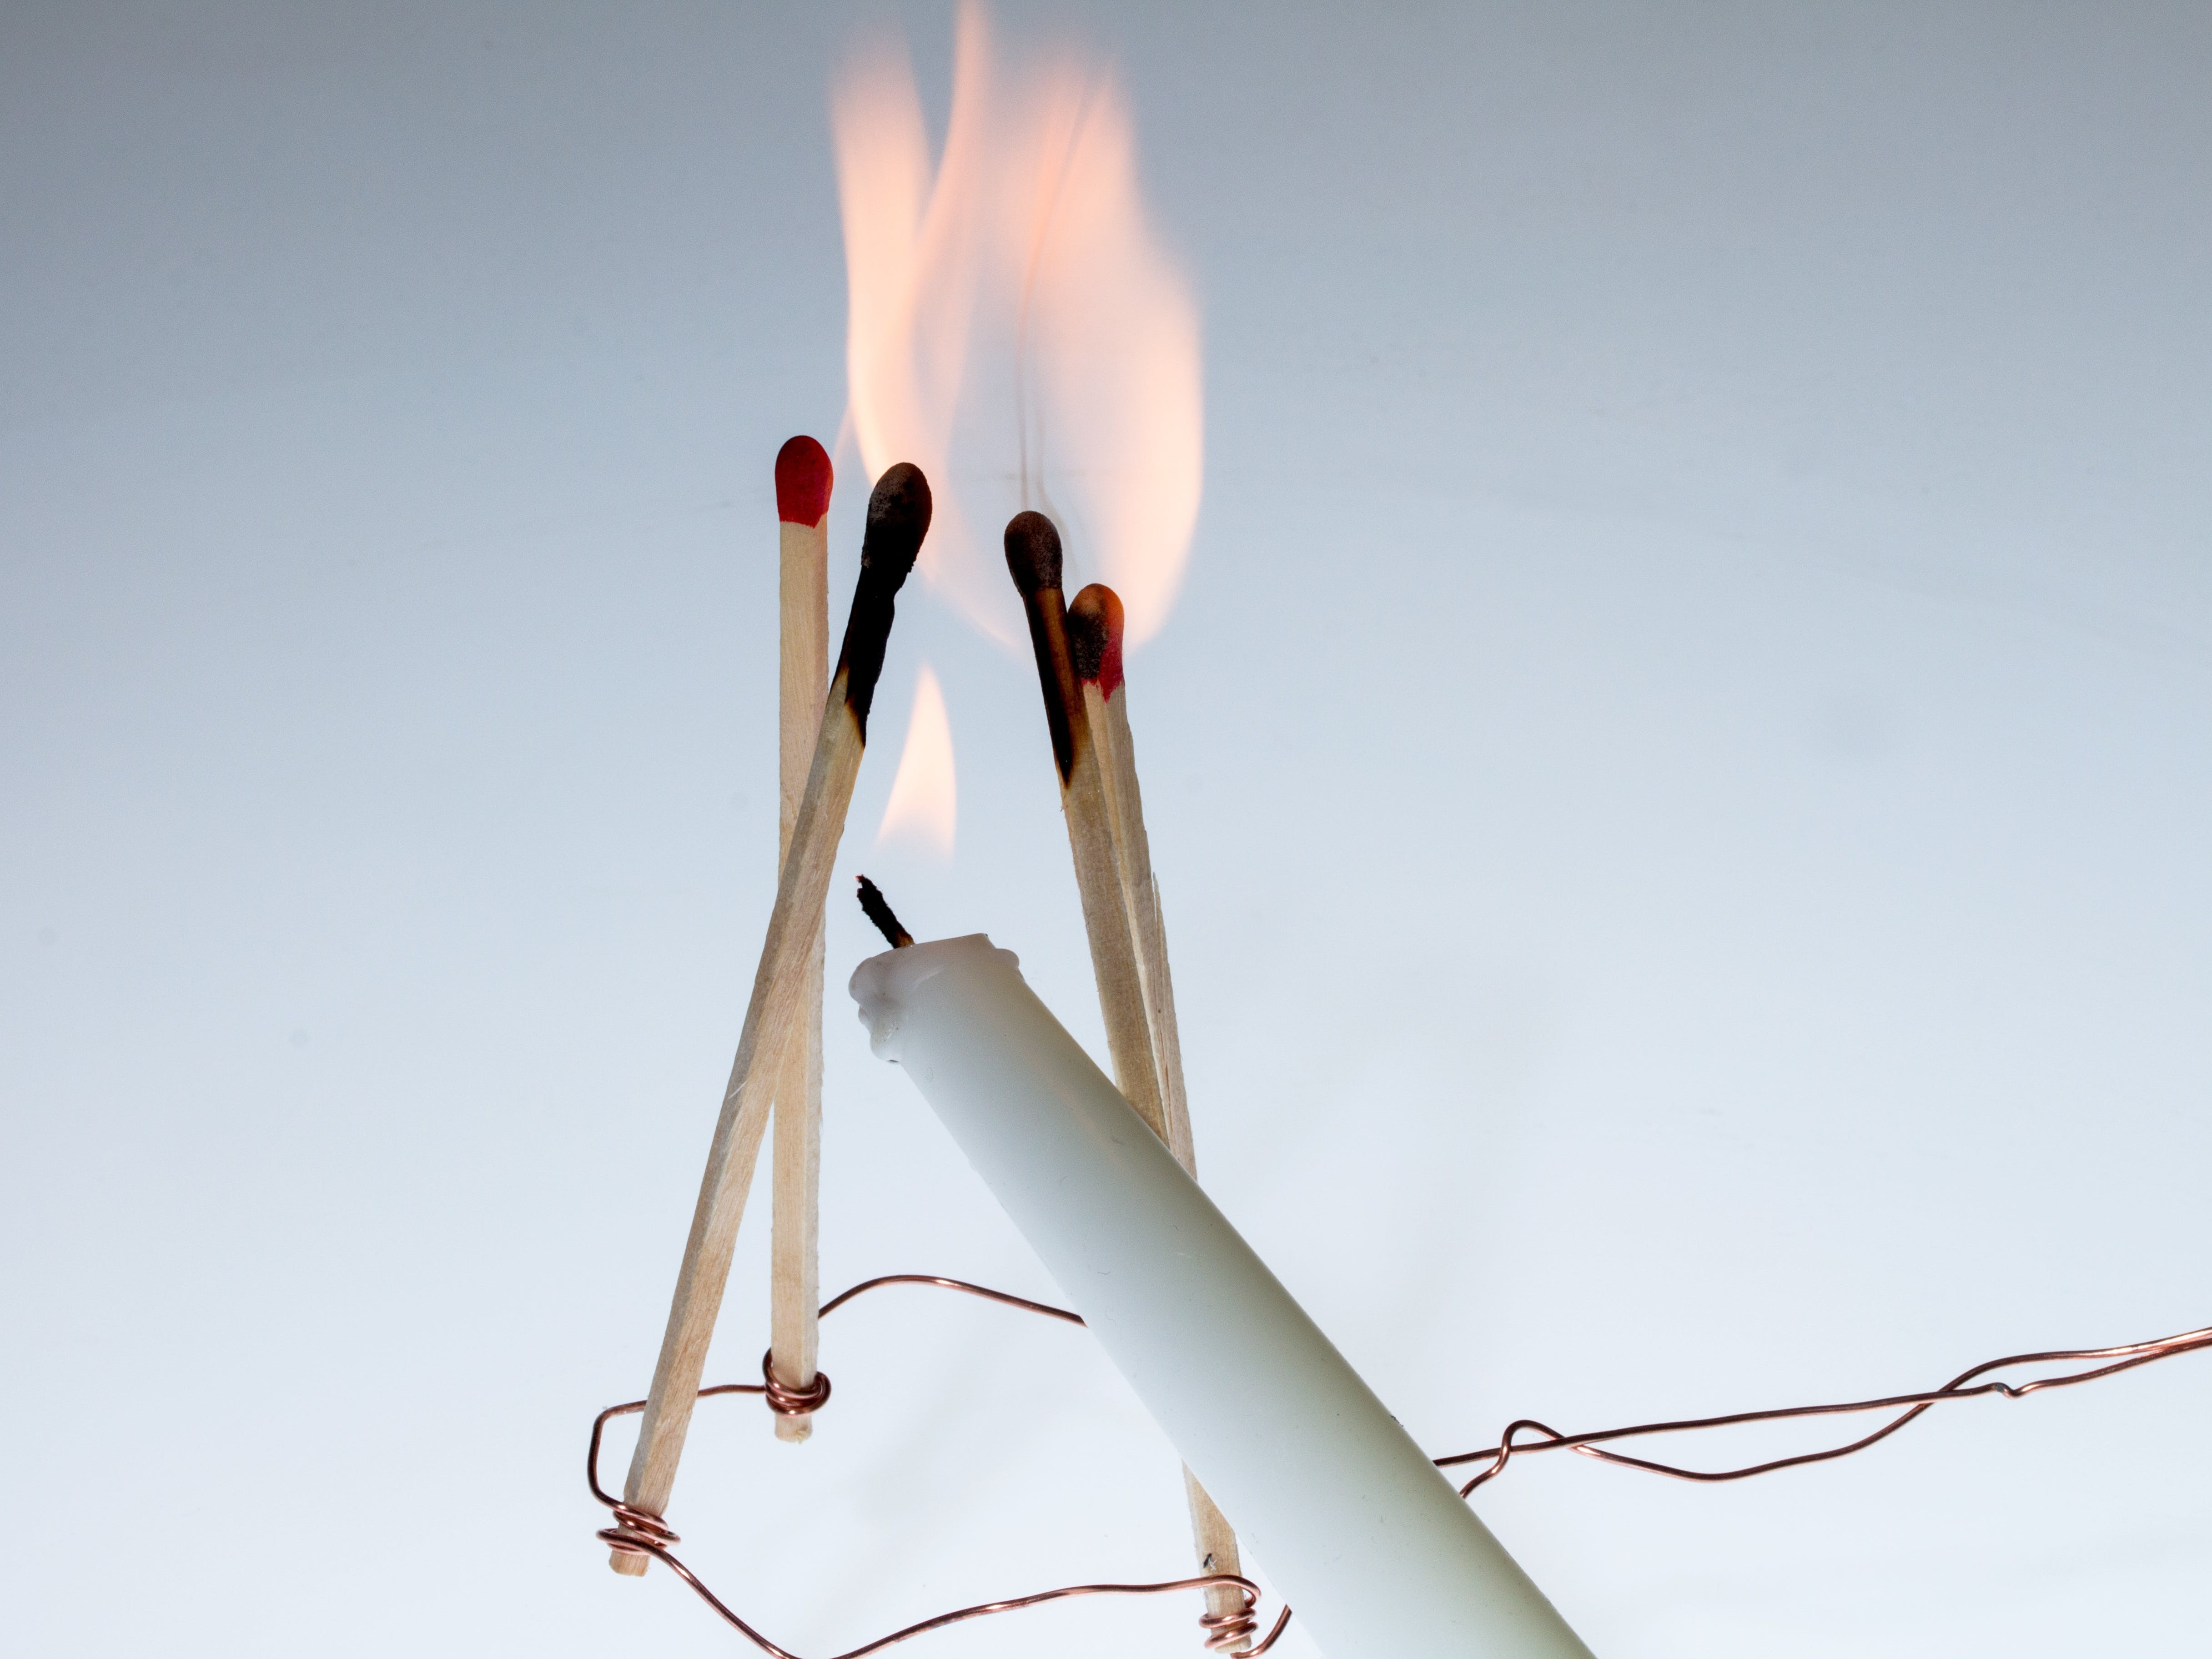 Free stock photo of burning down, fire, flame, ignition